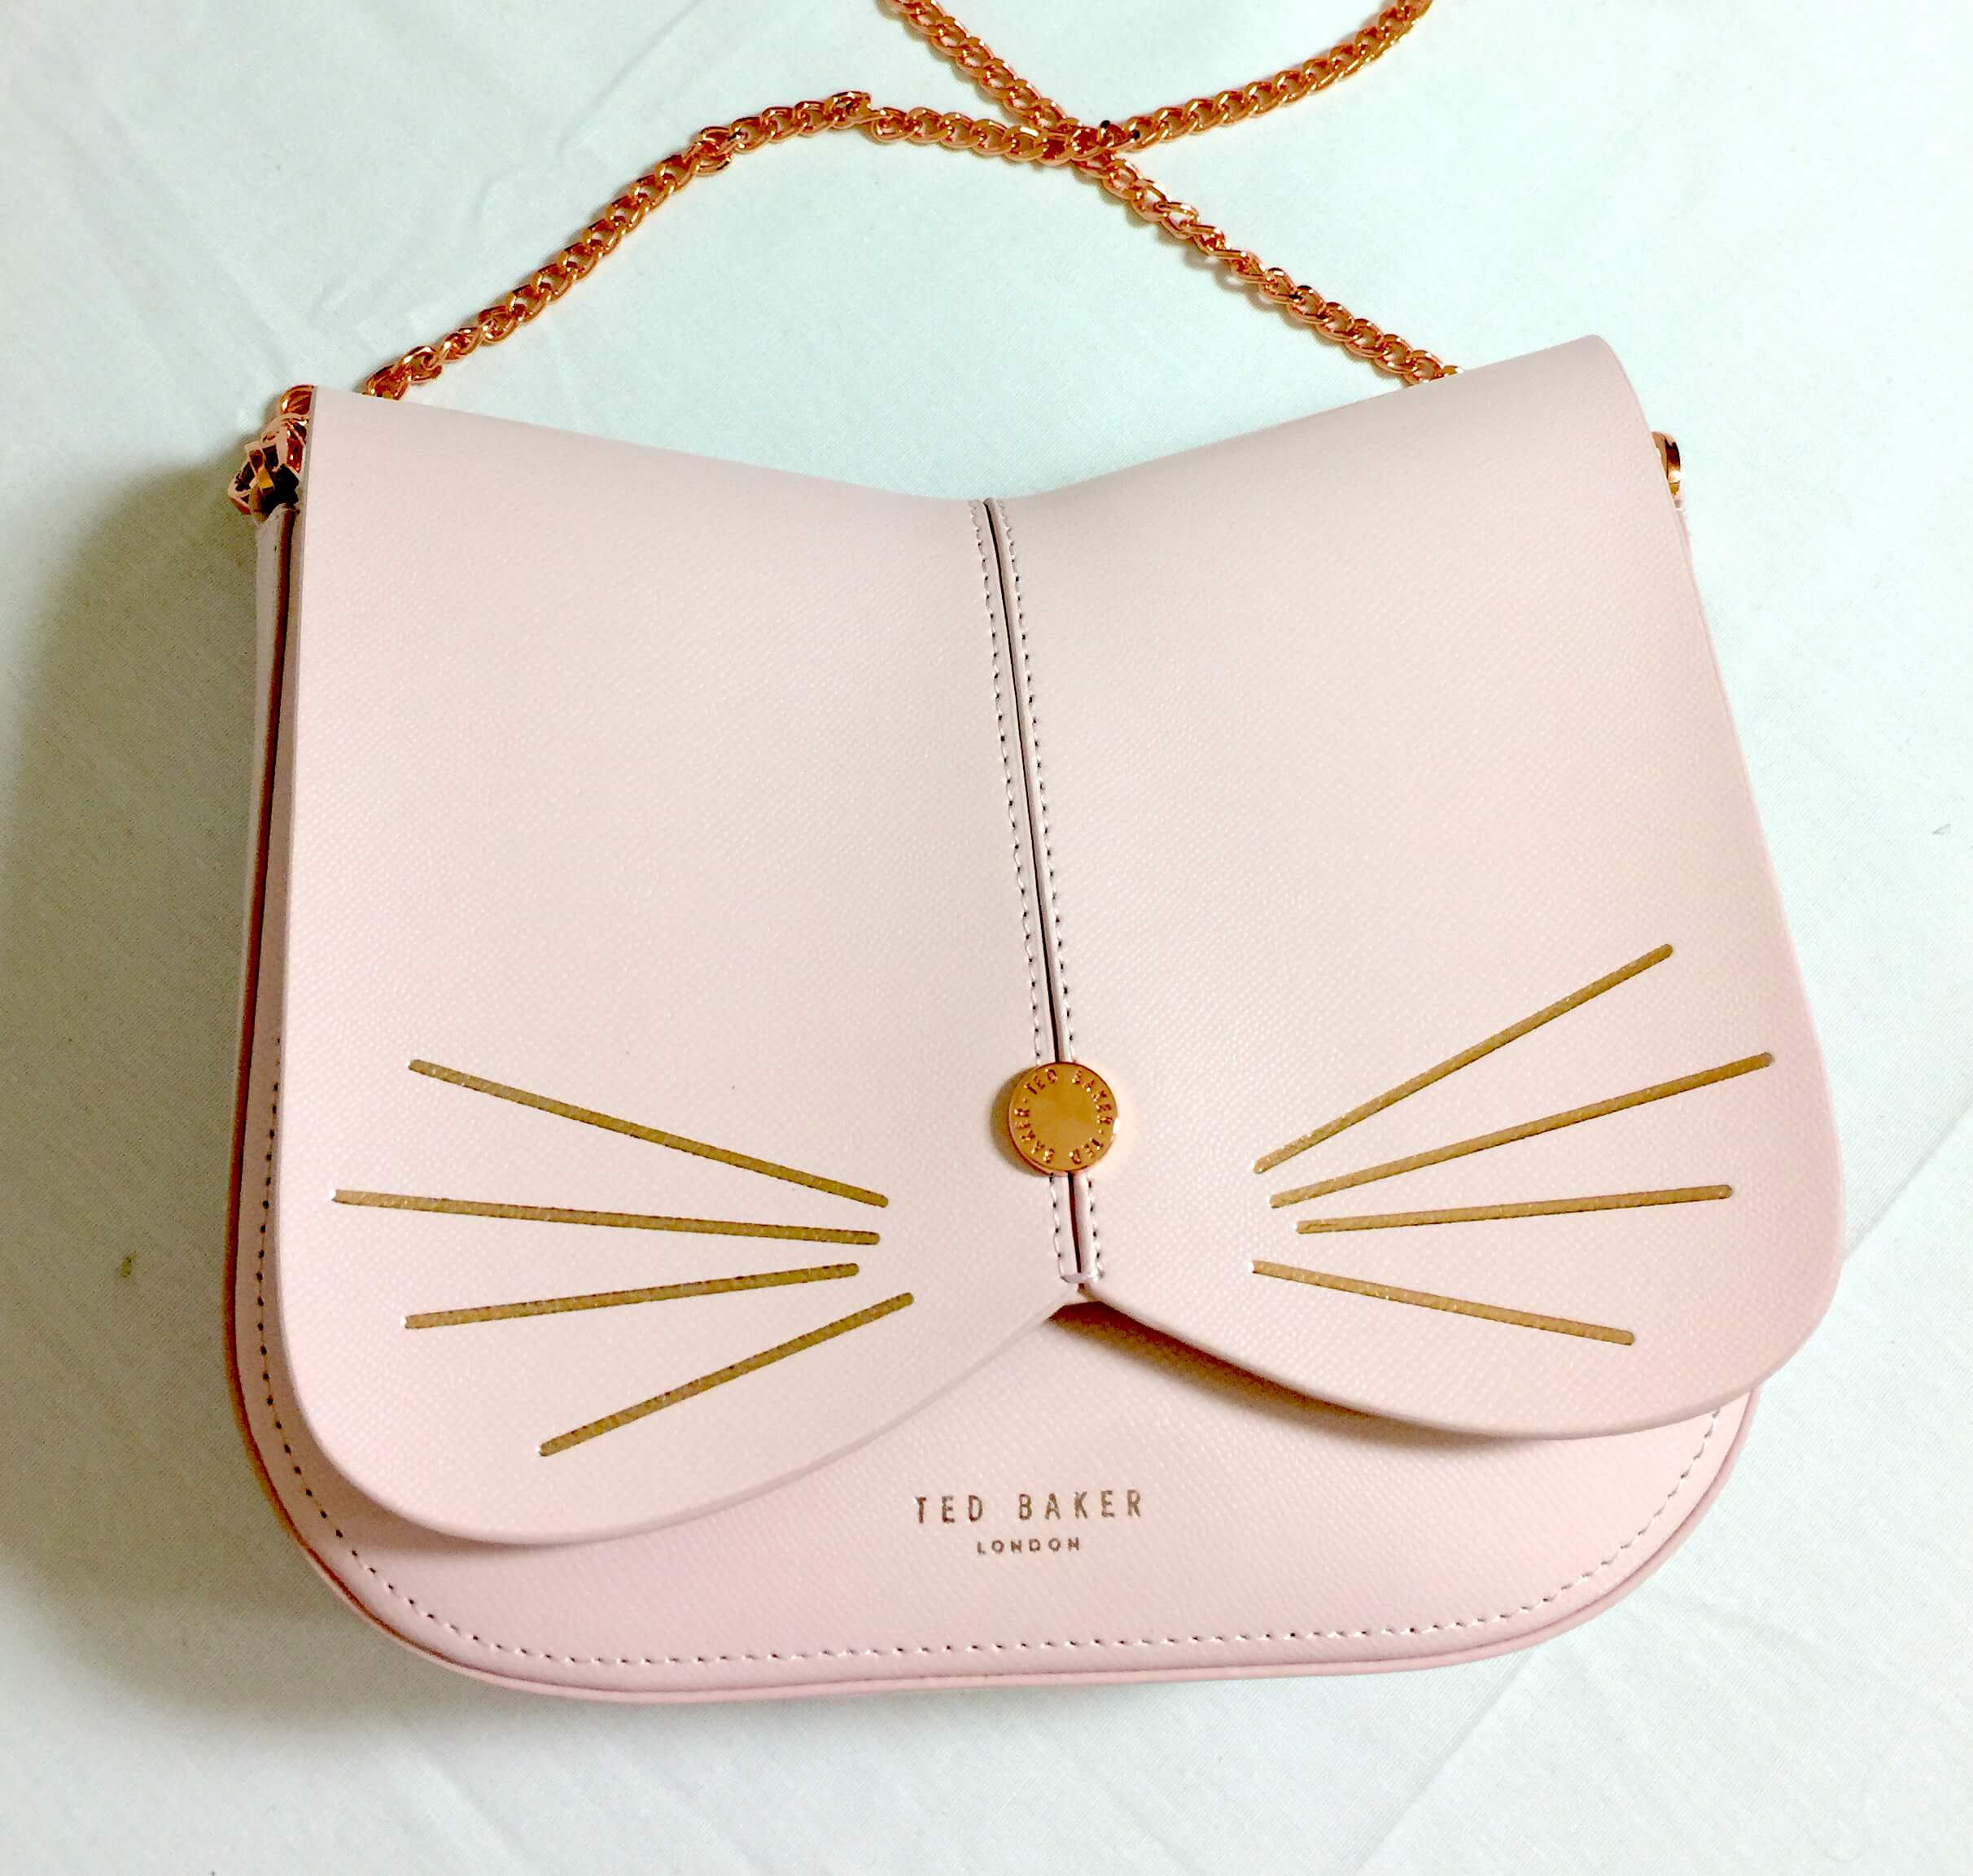 Ted Baker Cat Leather Crossbody Bag In Baby Pink Review